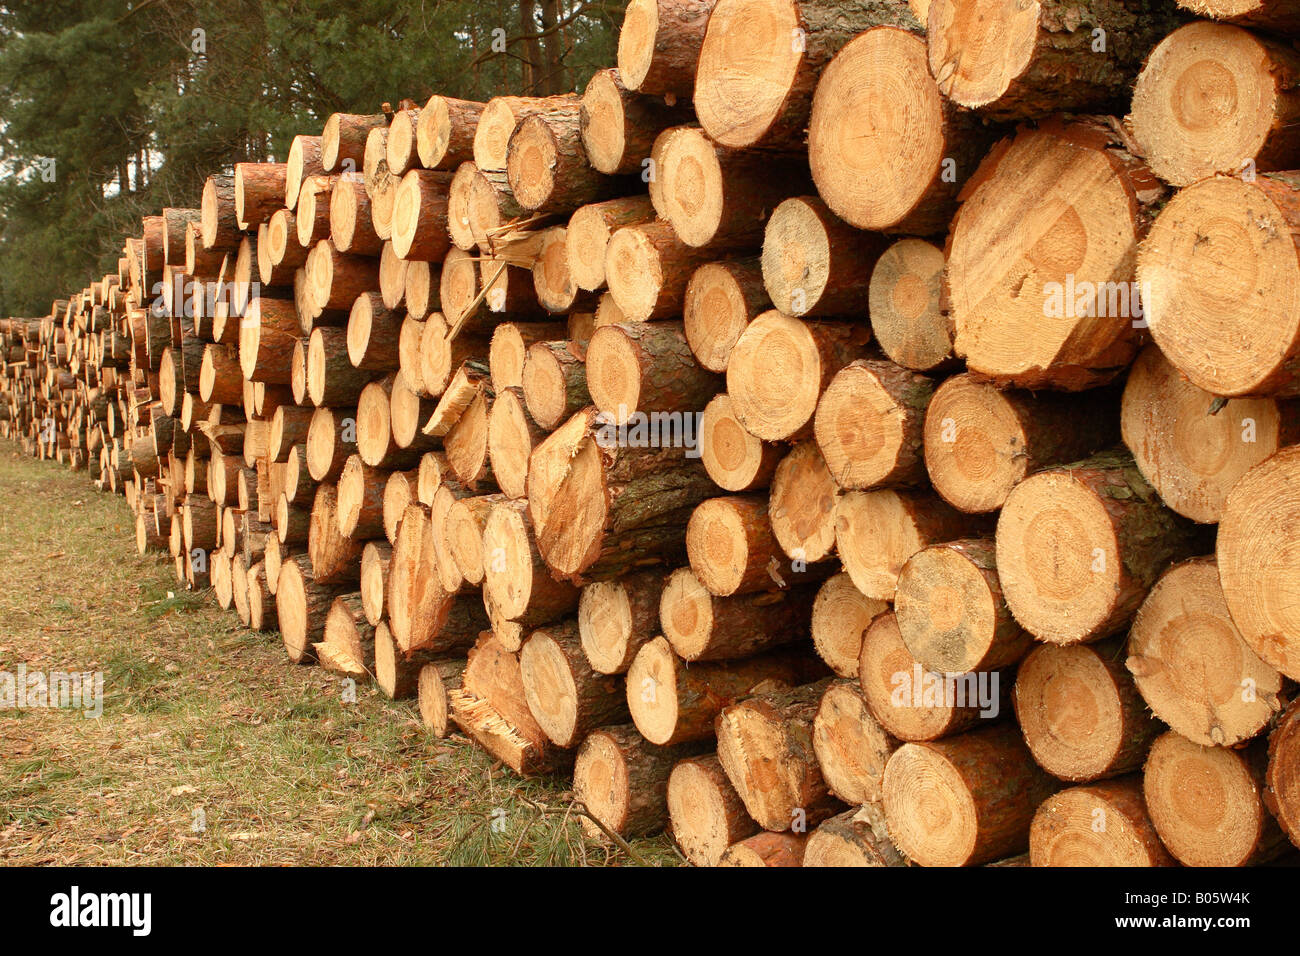 Good Pine Tree Timber #2: Cut Red Pine Tree Trunk Timber Lumber Logs Stacked In Forest Clearing